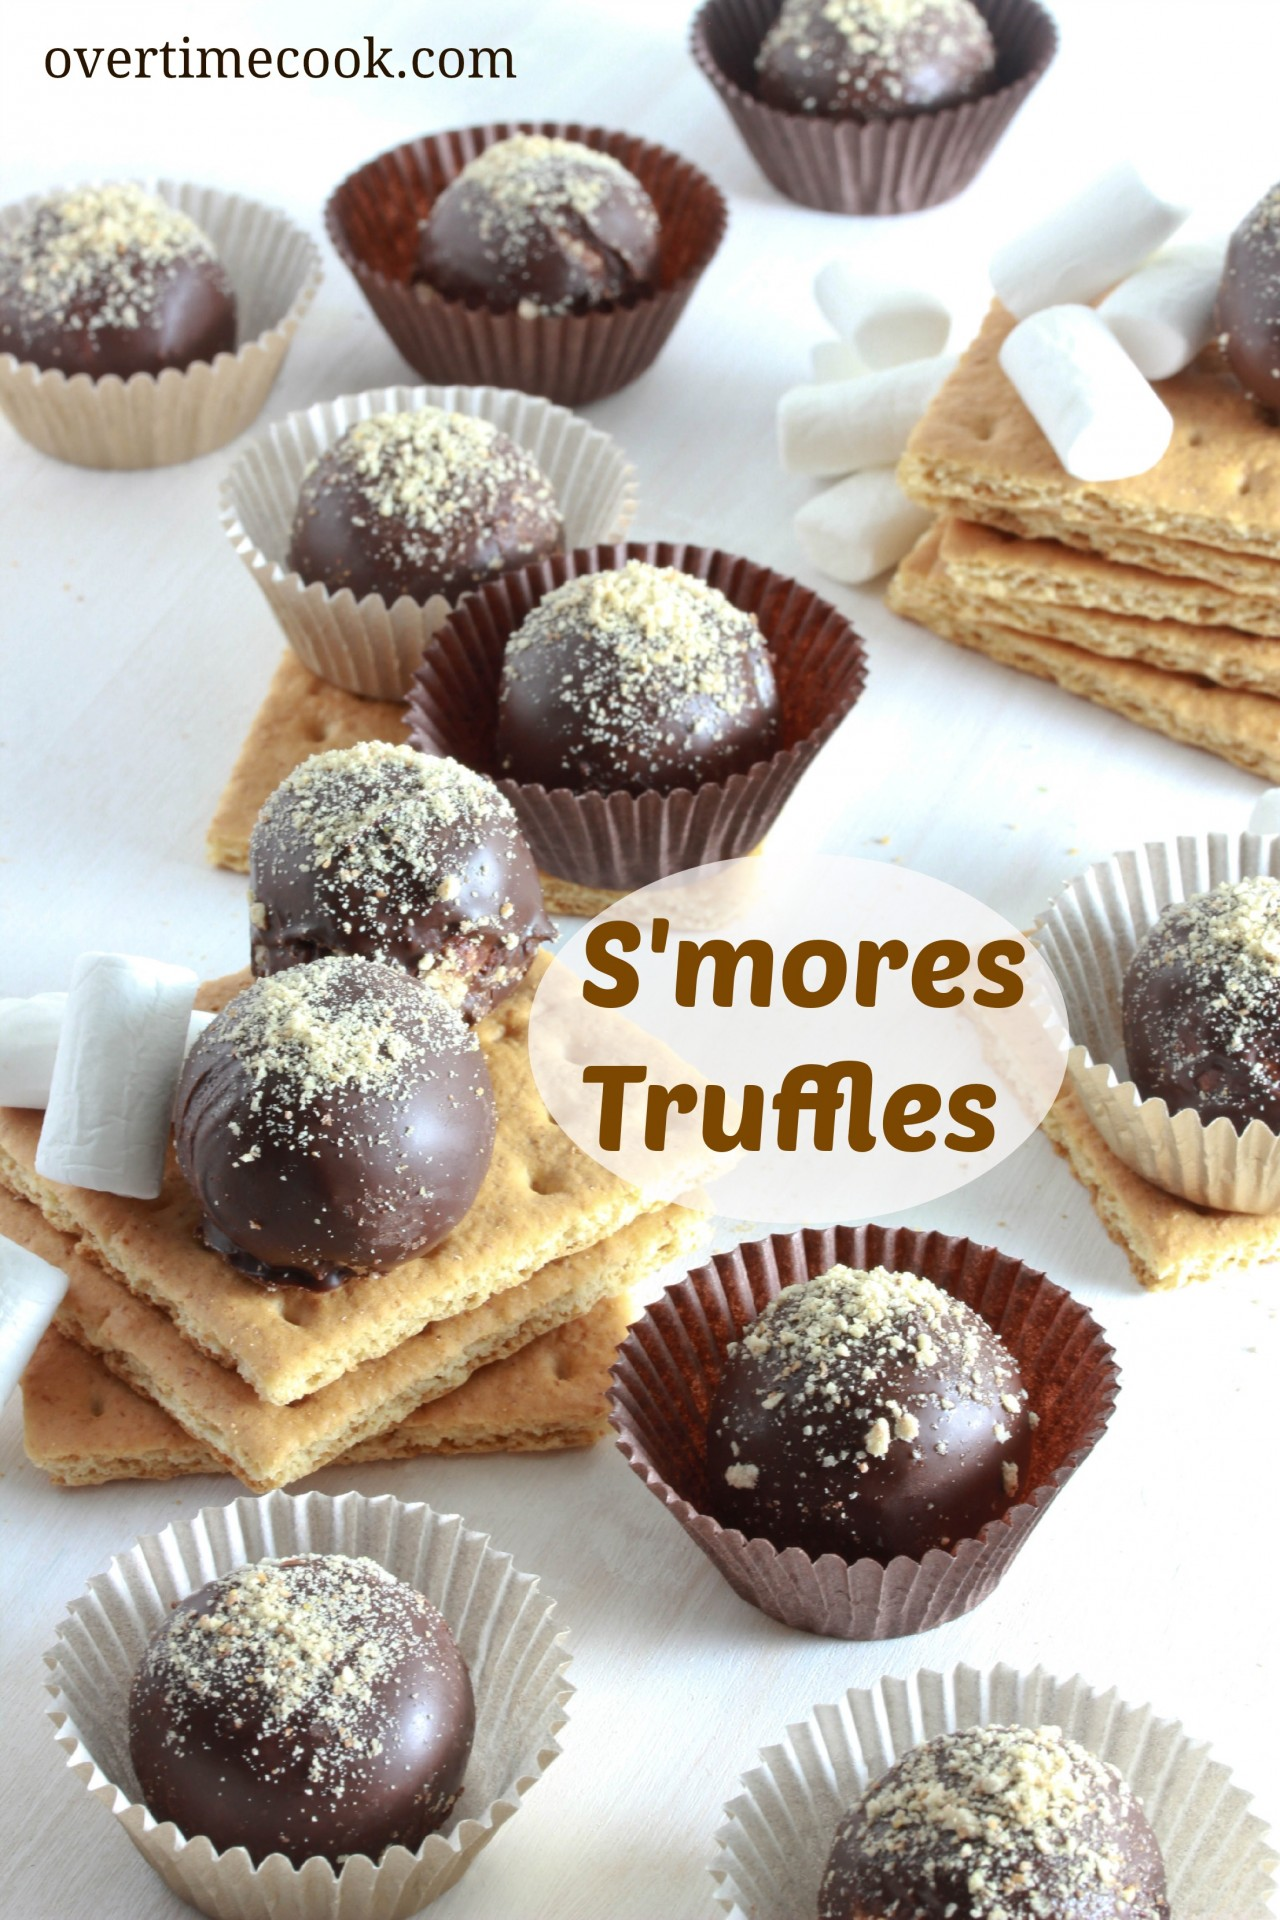 mores Truffles - Overtime Cook